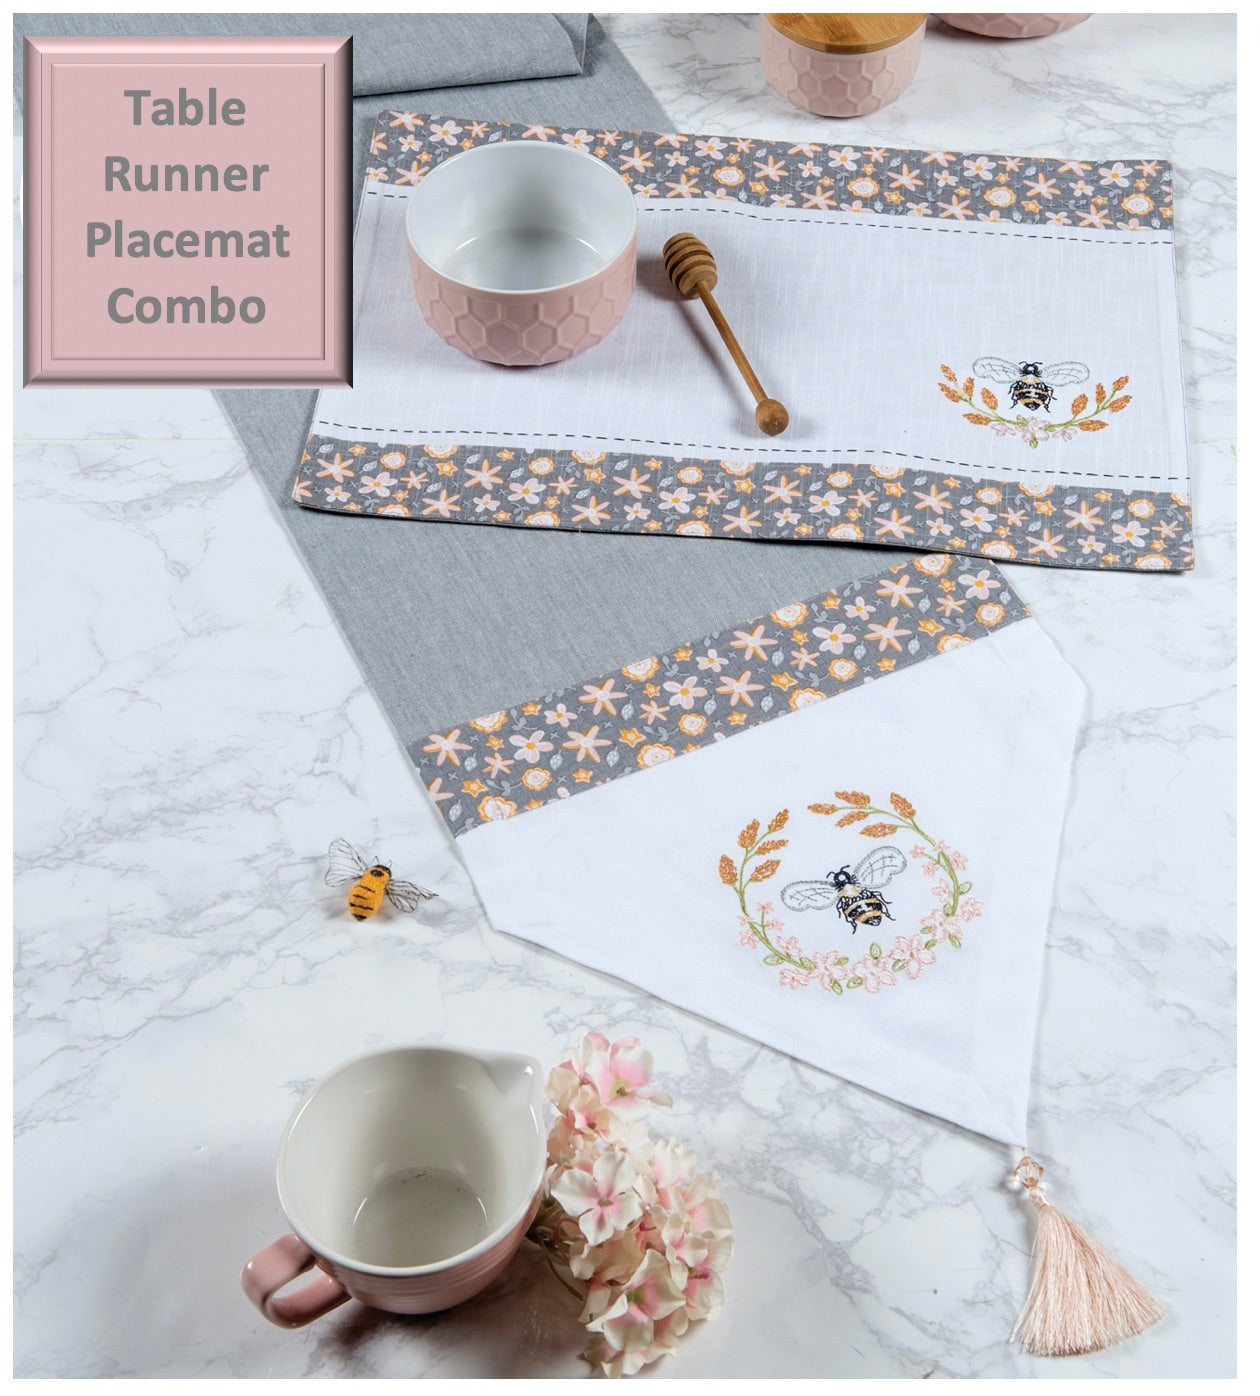 Bee Inspired Table Runner Placemat Combo